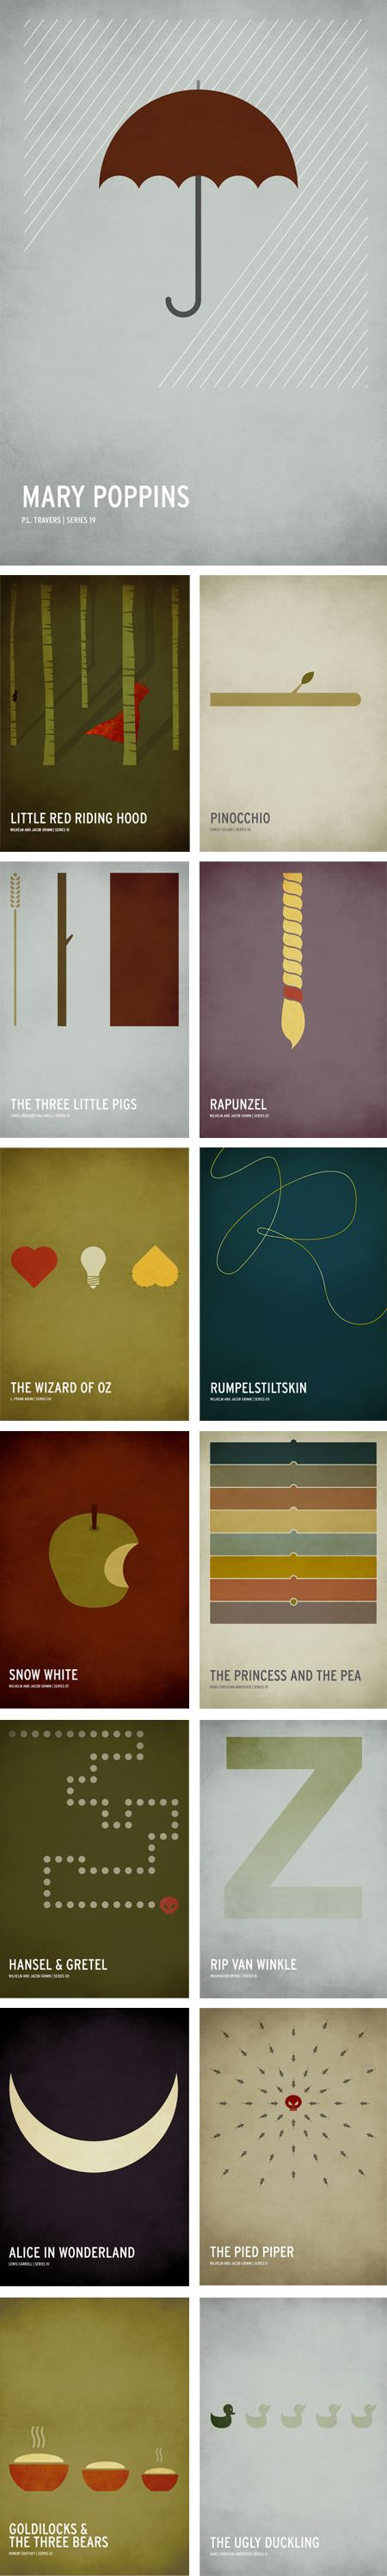 Minimalist Book Cover ~ Fairy tales poster and fairies on pinterest